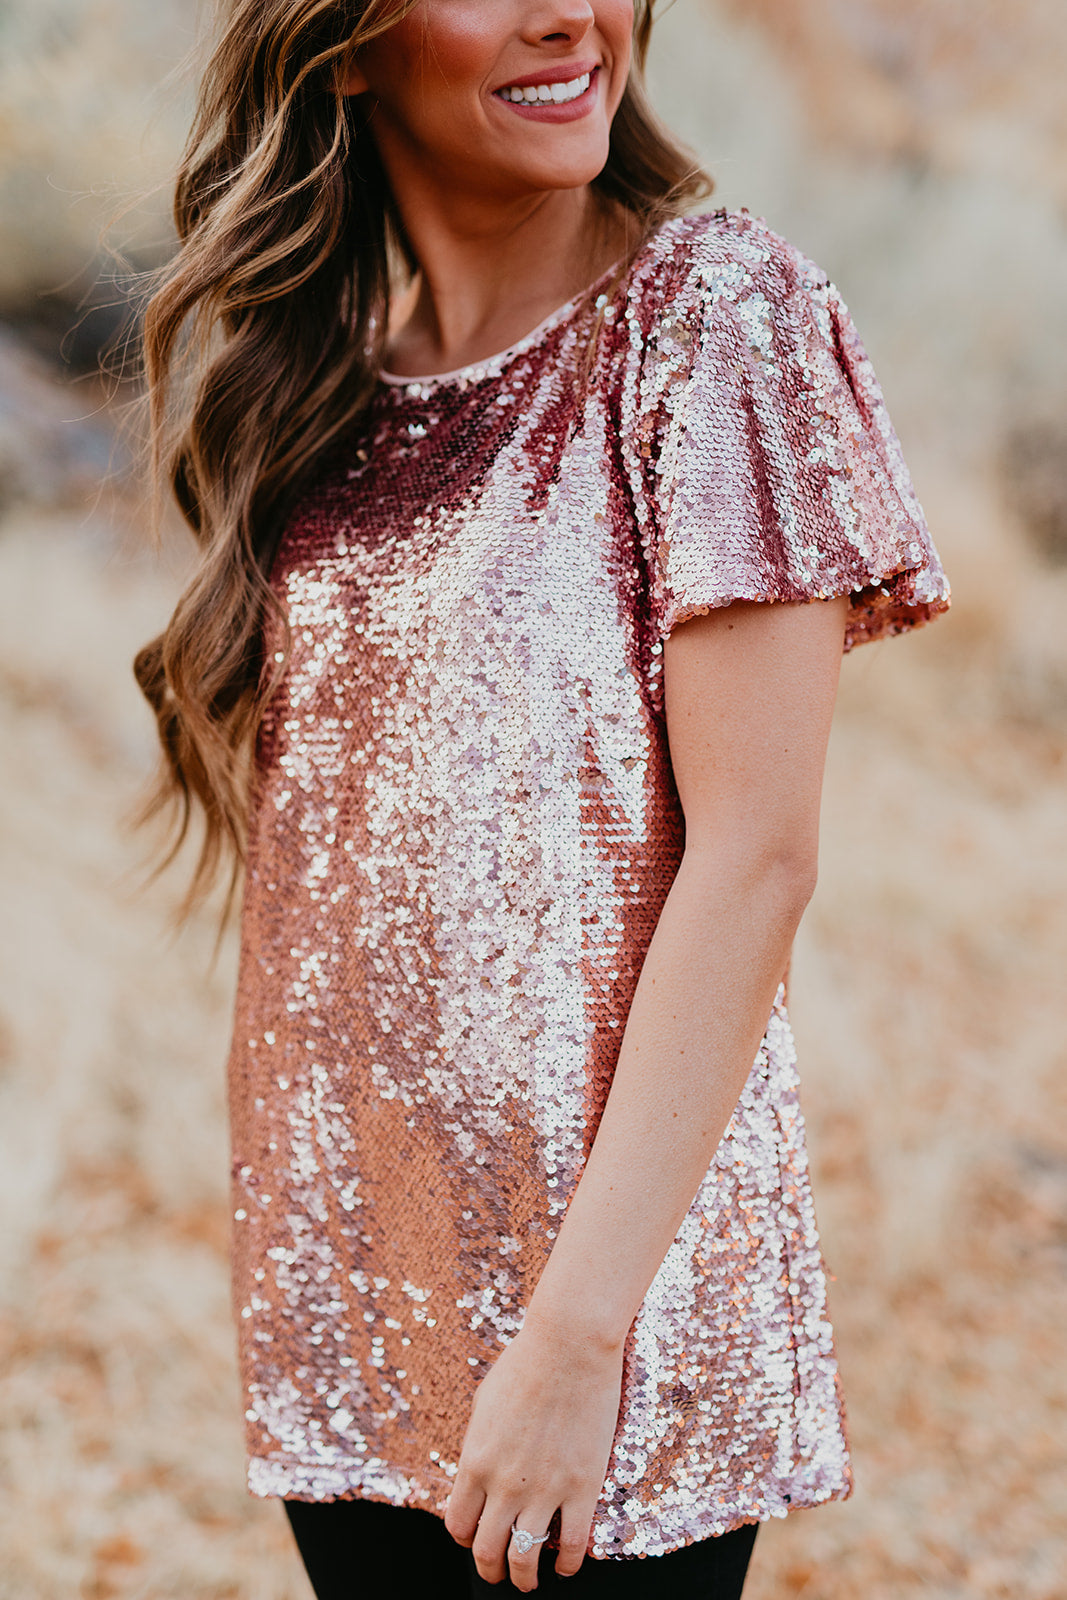 THE MUST BE SEEN SEQUIN TOP IN ROSE GOLD